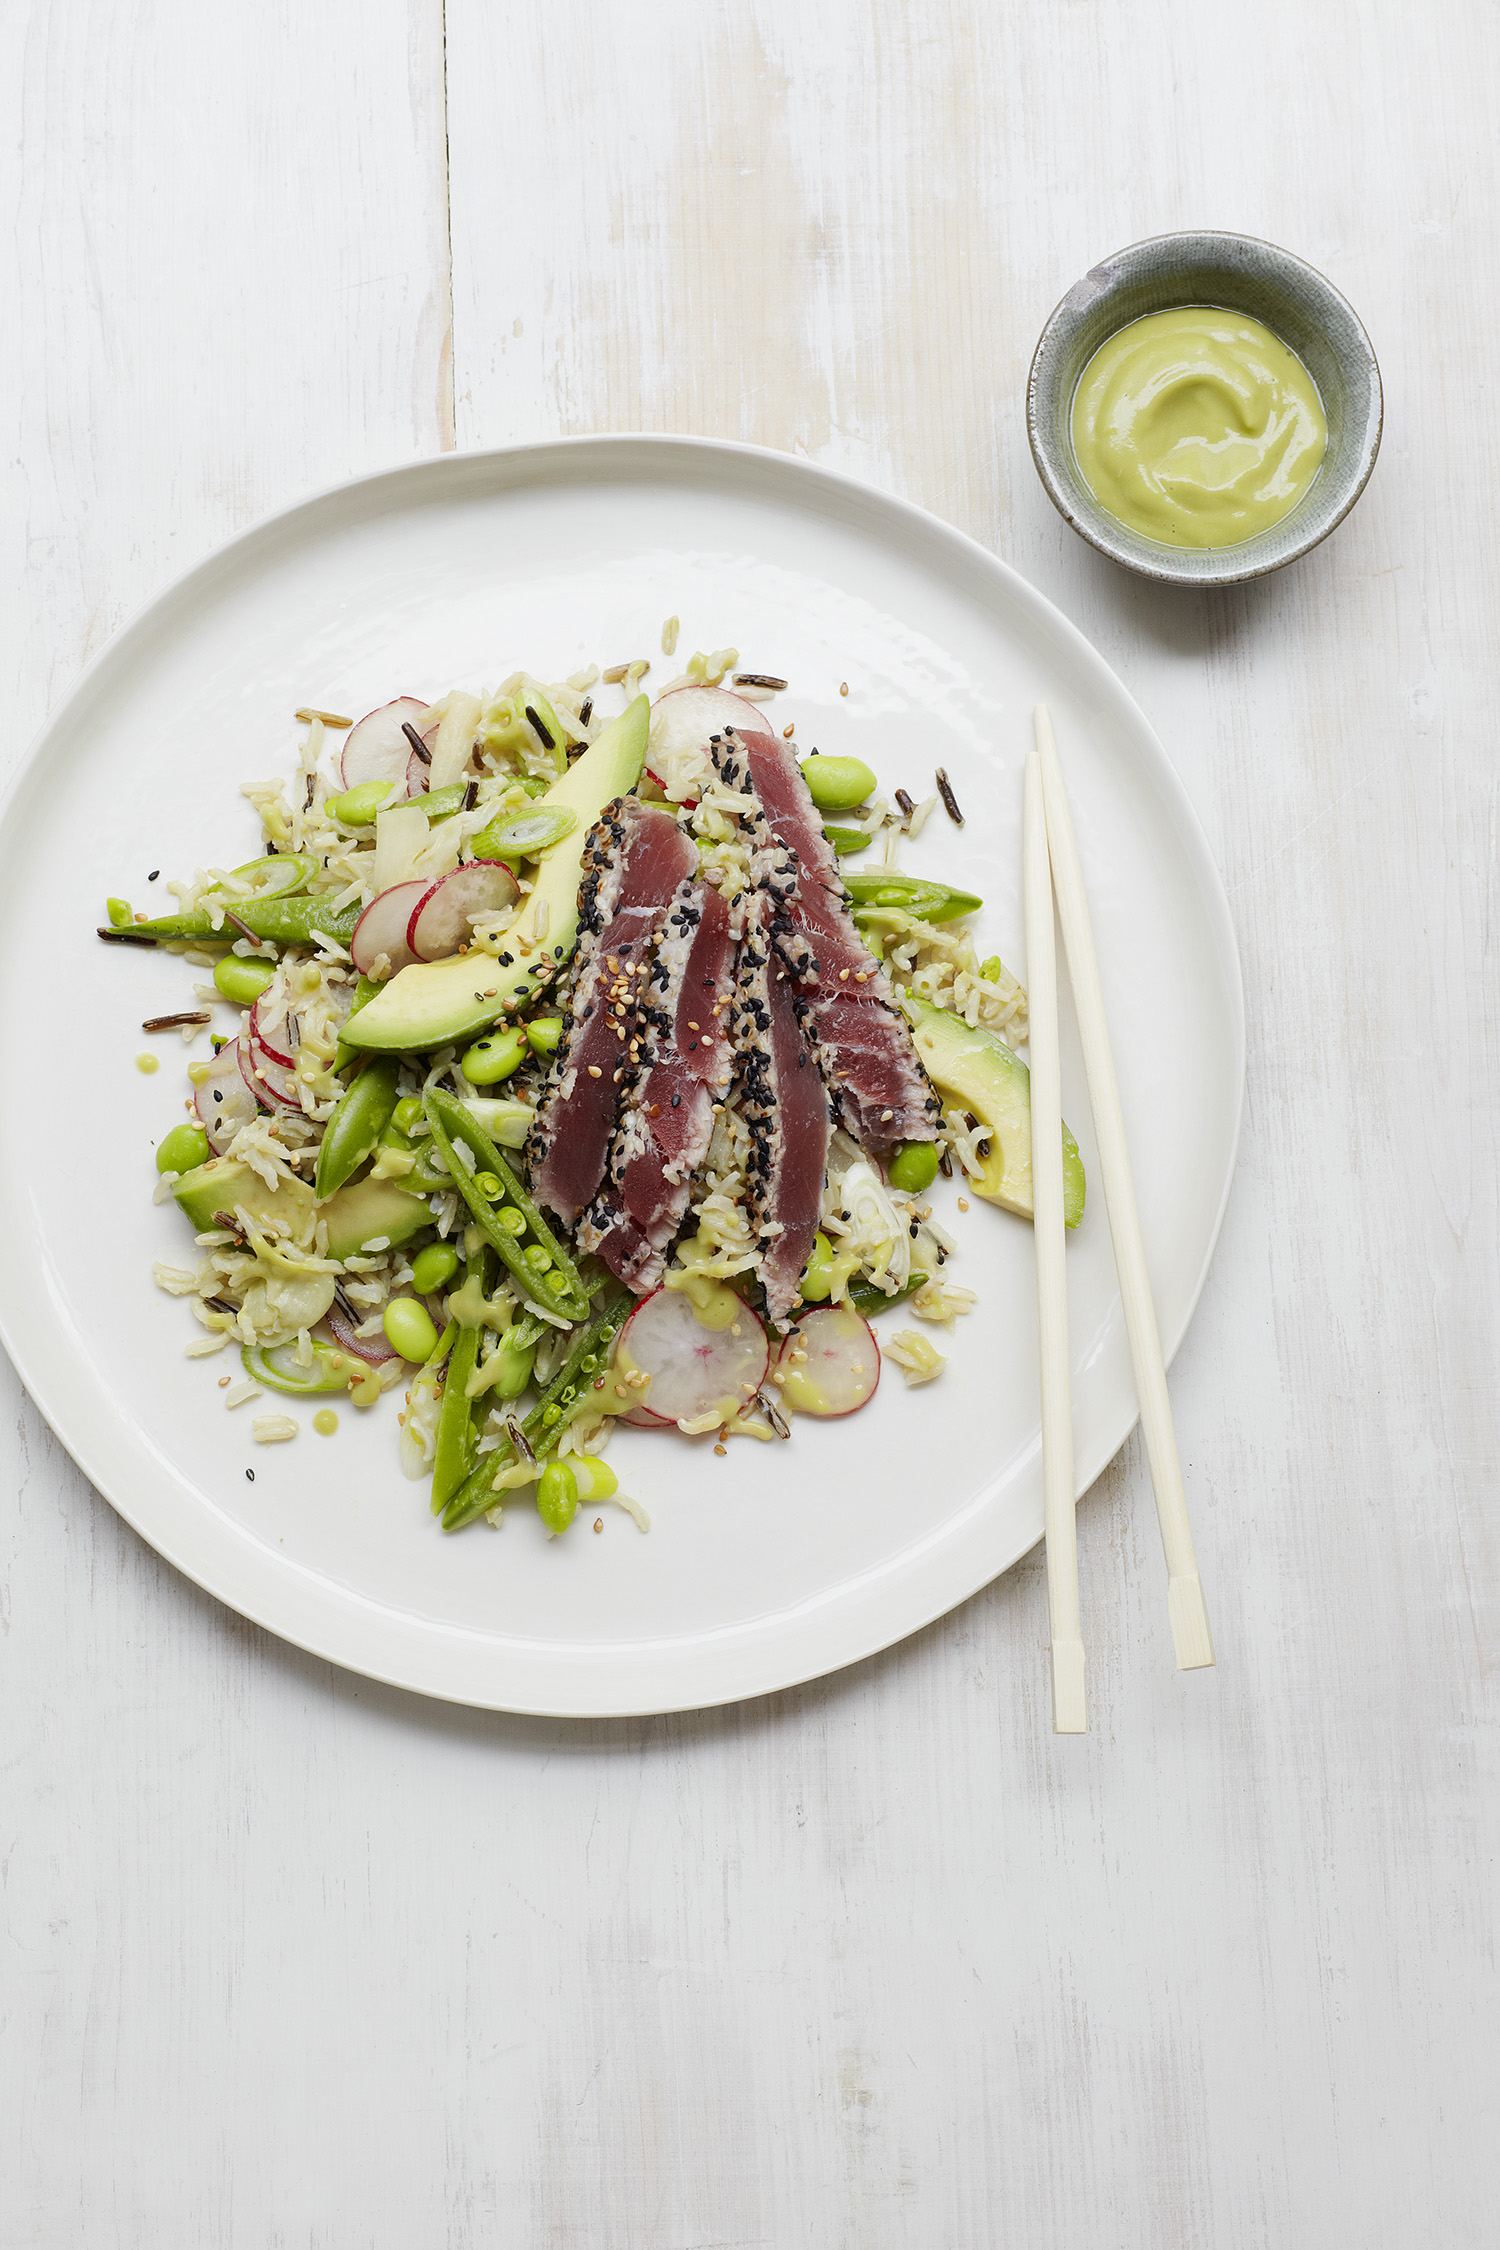 Tuna Sushi Salad and Wasabi Avo Dressing Photograph Clare Winfield, Prop Styling Wei Tang (from The Goodness of Avocado)